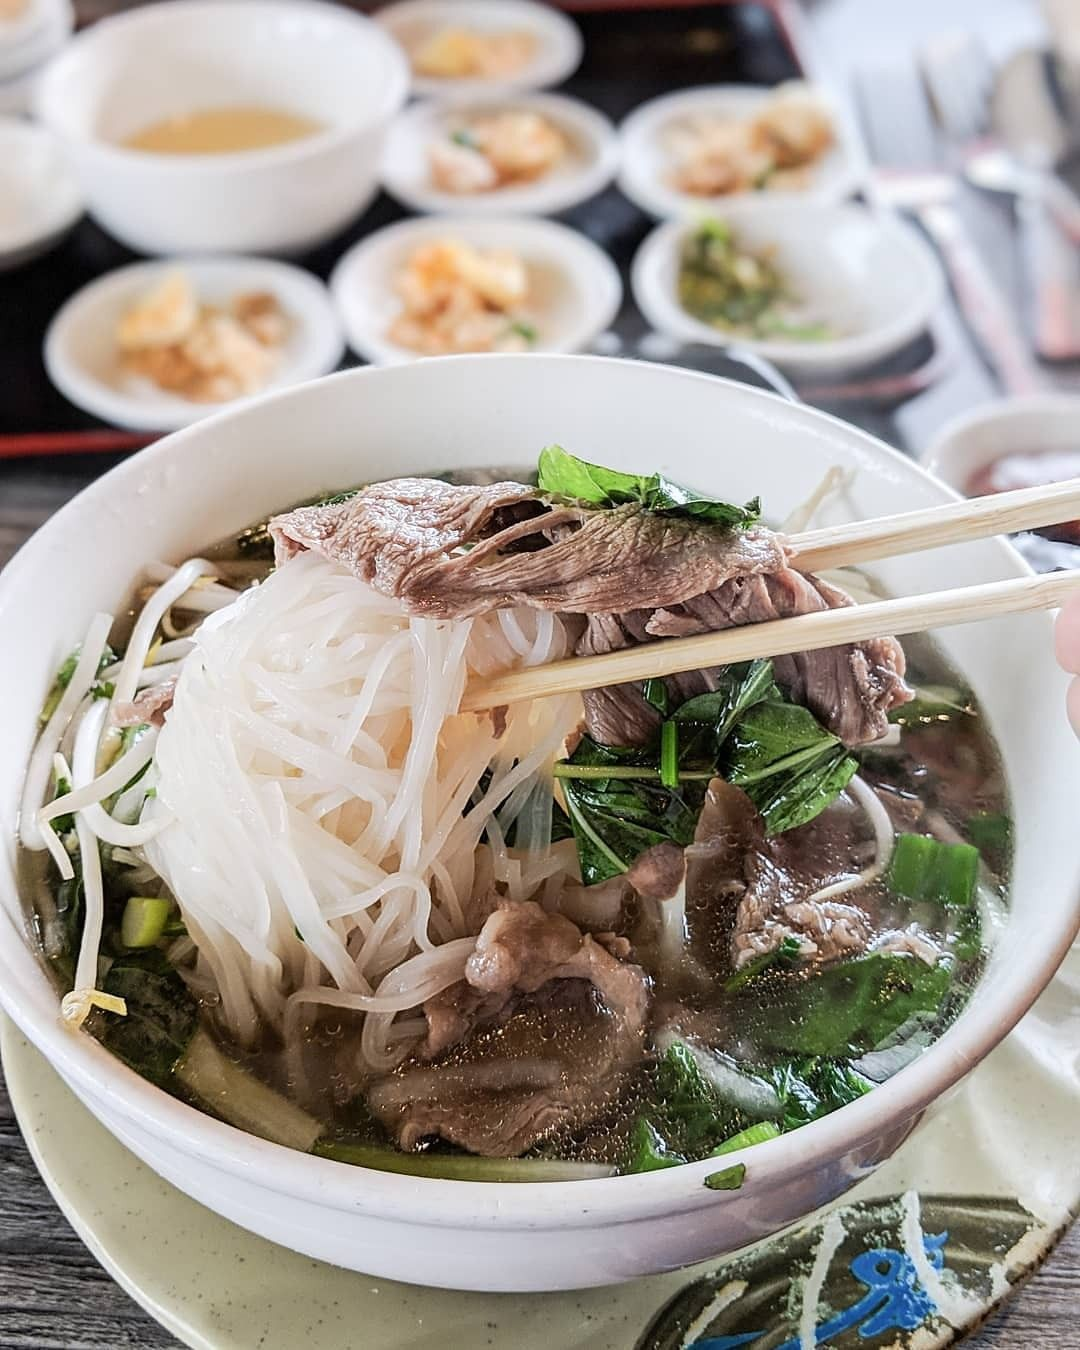 S O To Mattatouille Eater La For Making The Trip To Visit Pho Hue Oi In South Bay Redondo Beach And Trying Our With Images Certified Angus Beef Angus Beef Serious Eats